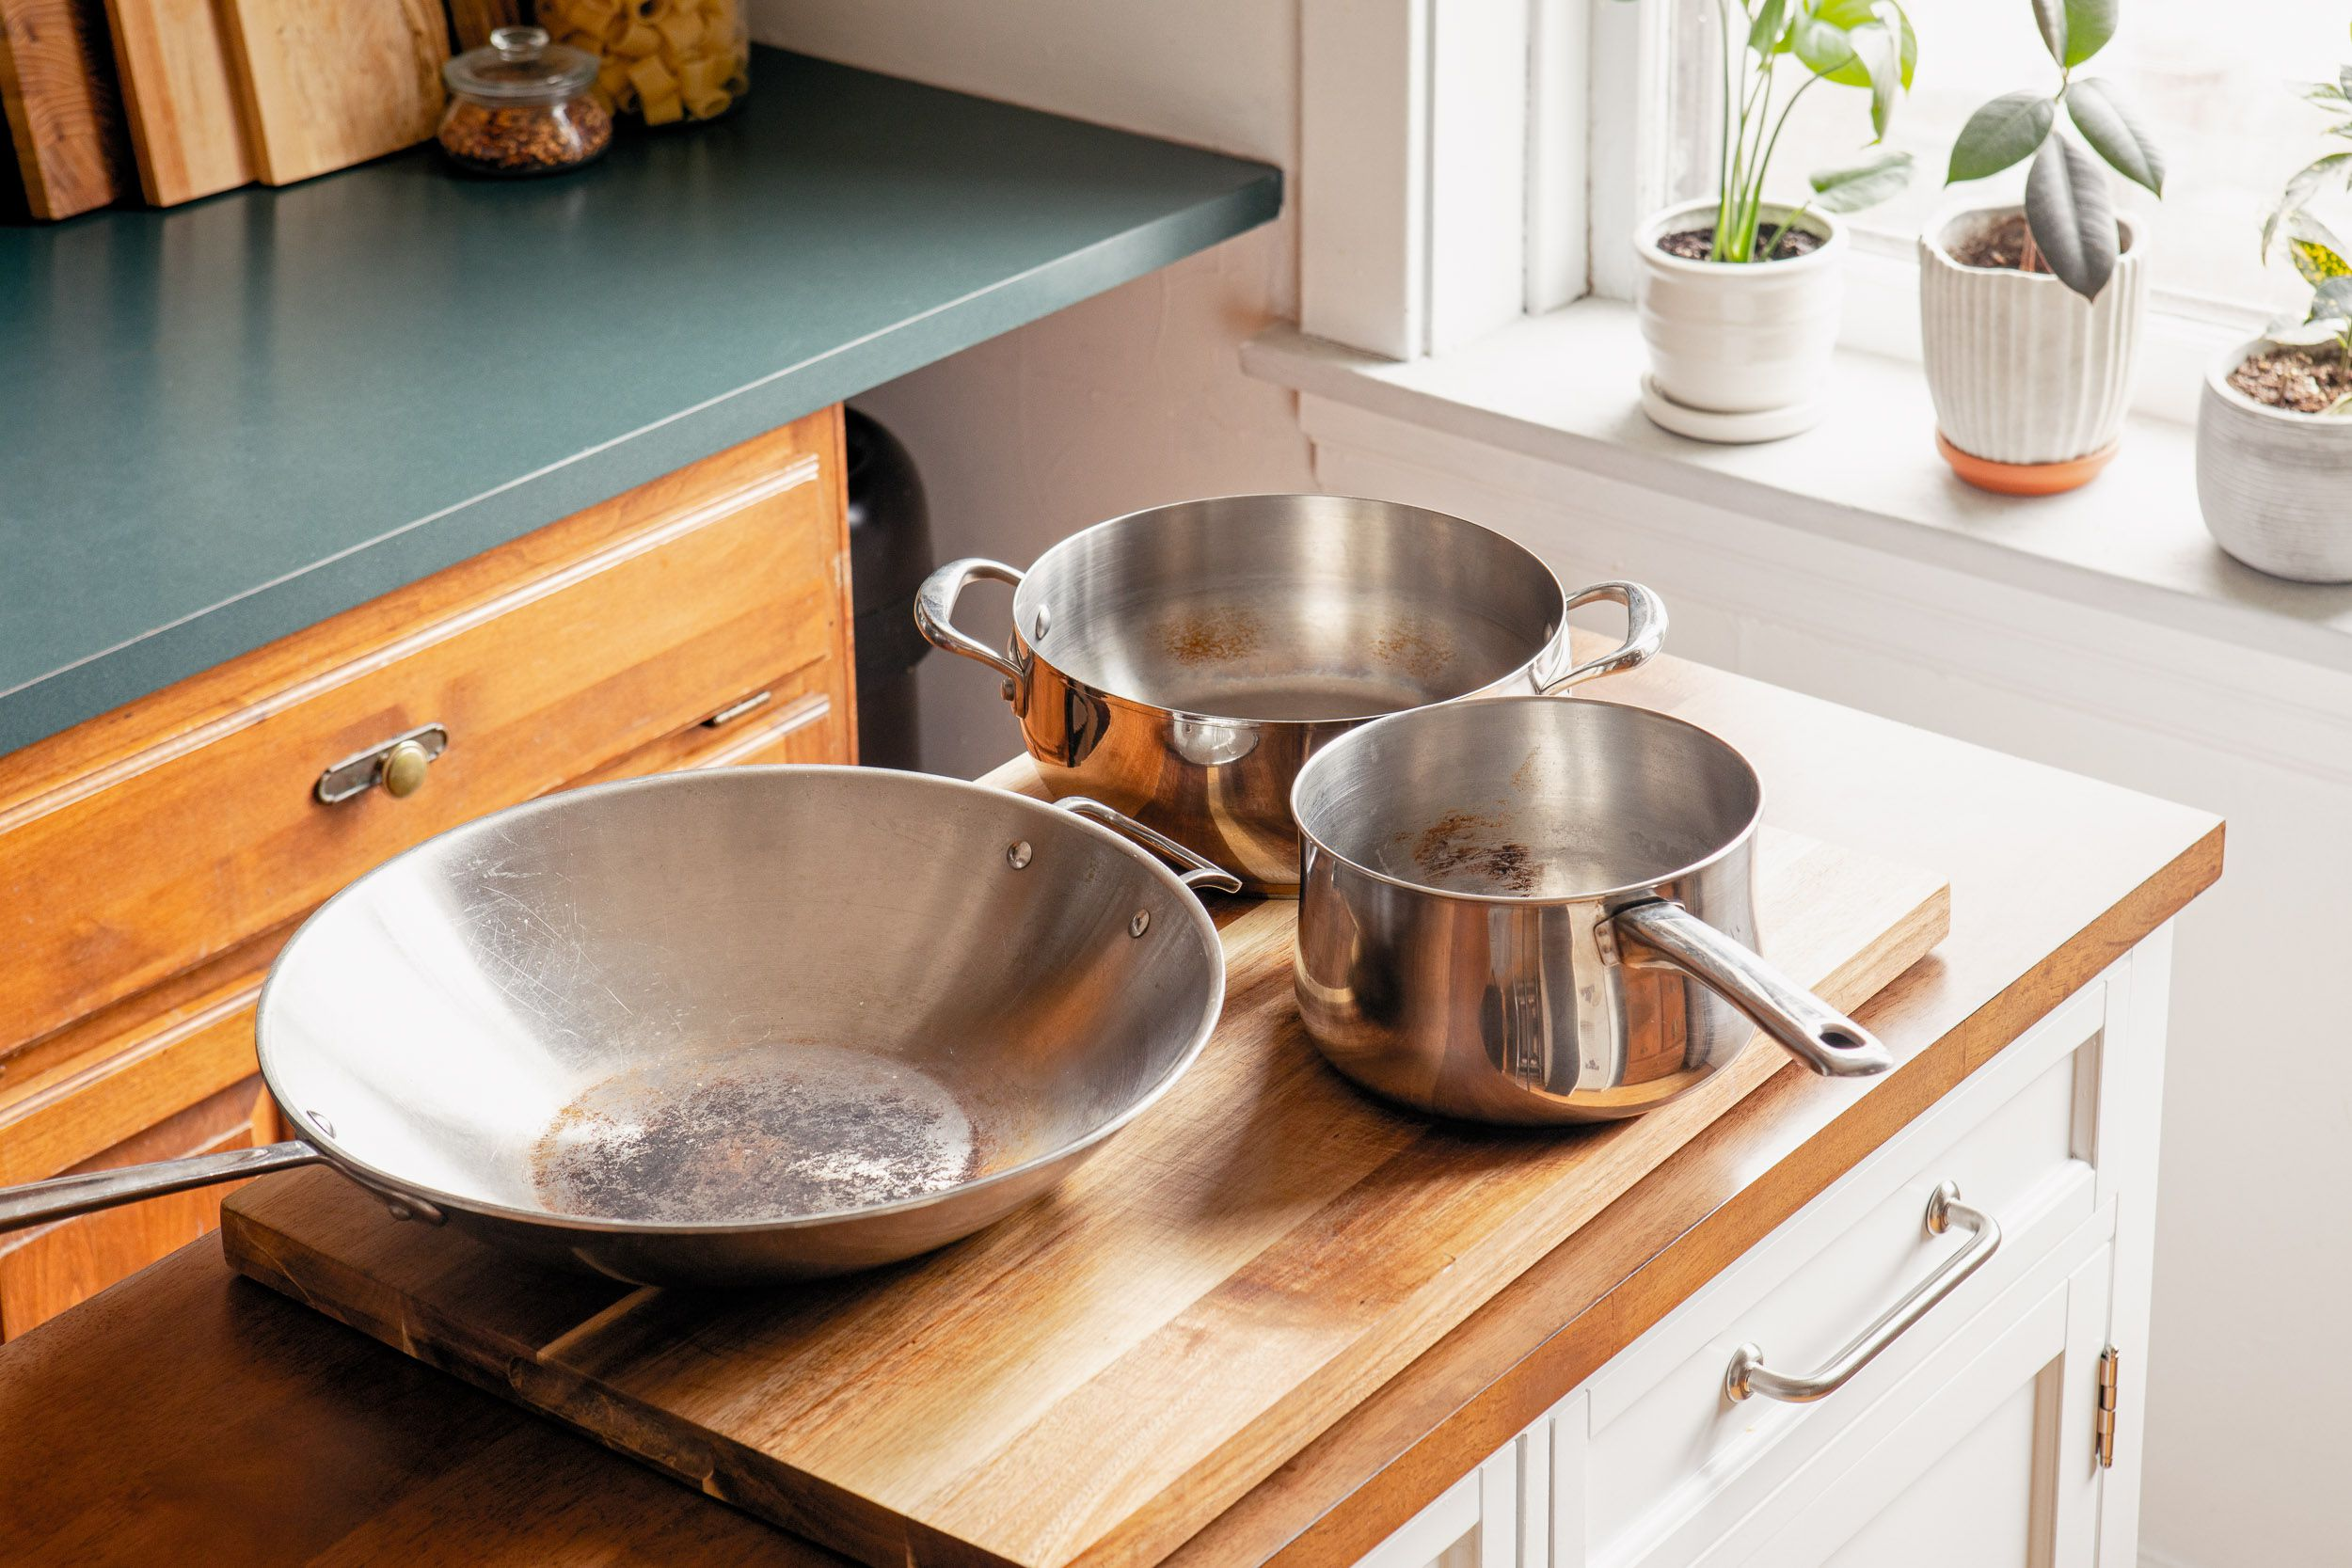 How To Remove Rust And Food Stains From Stainless Steel